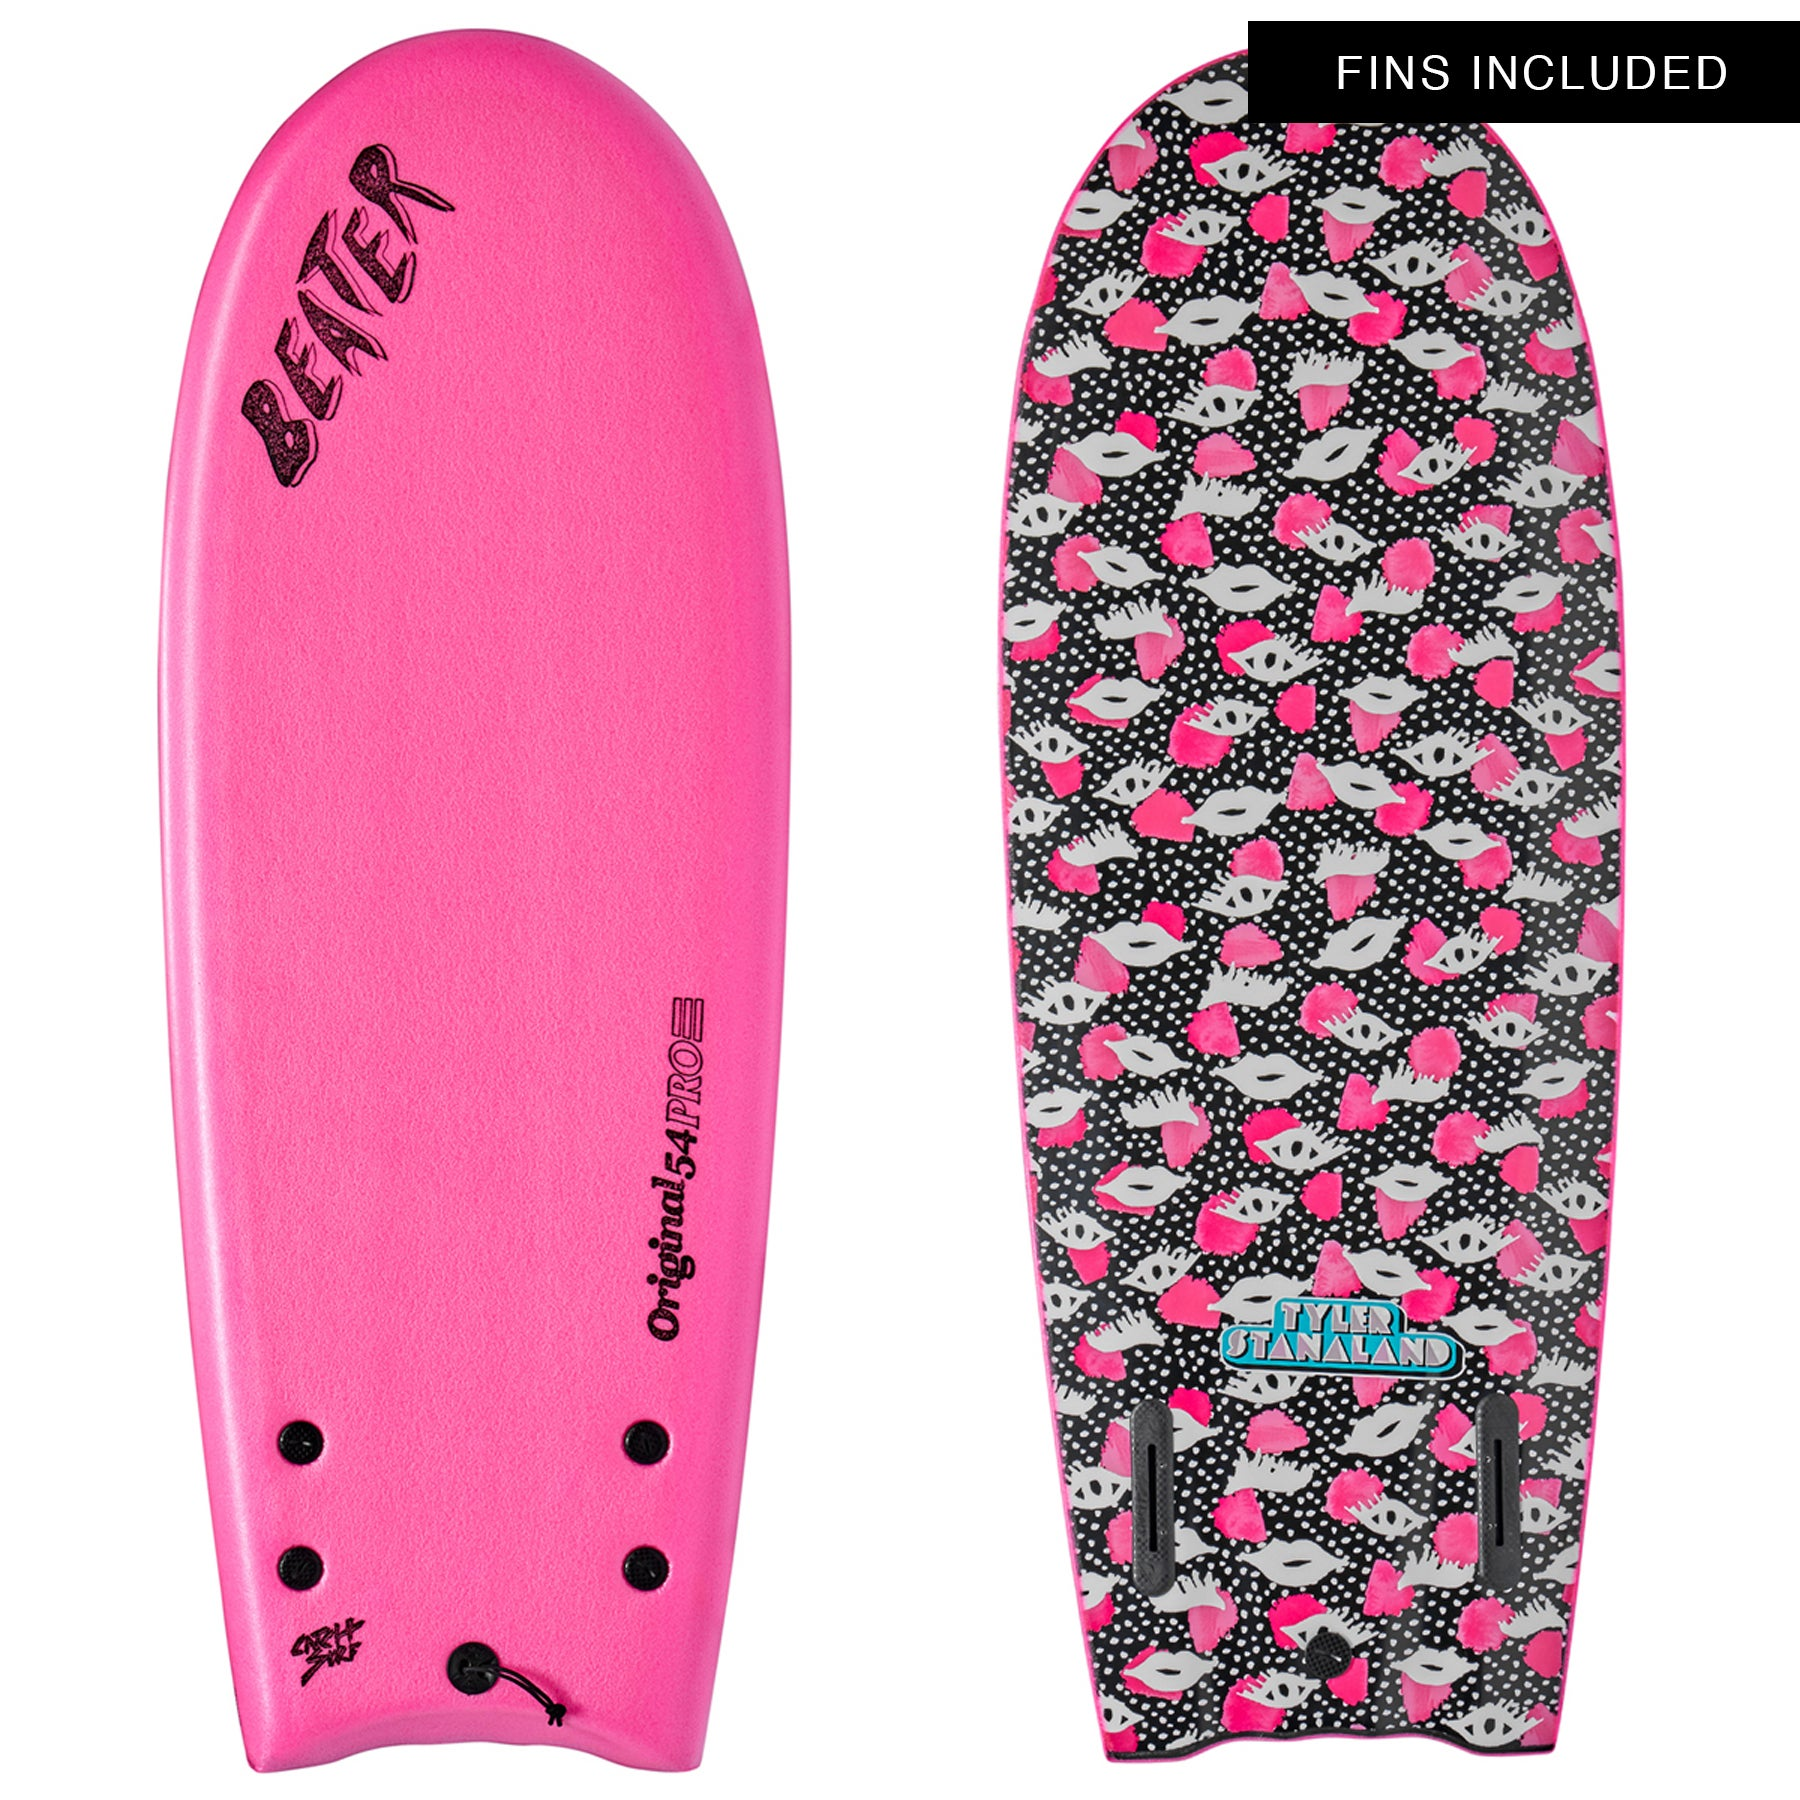 Catch Surf Tyler Stanaland Pro Model Surfboard - Hot Pink